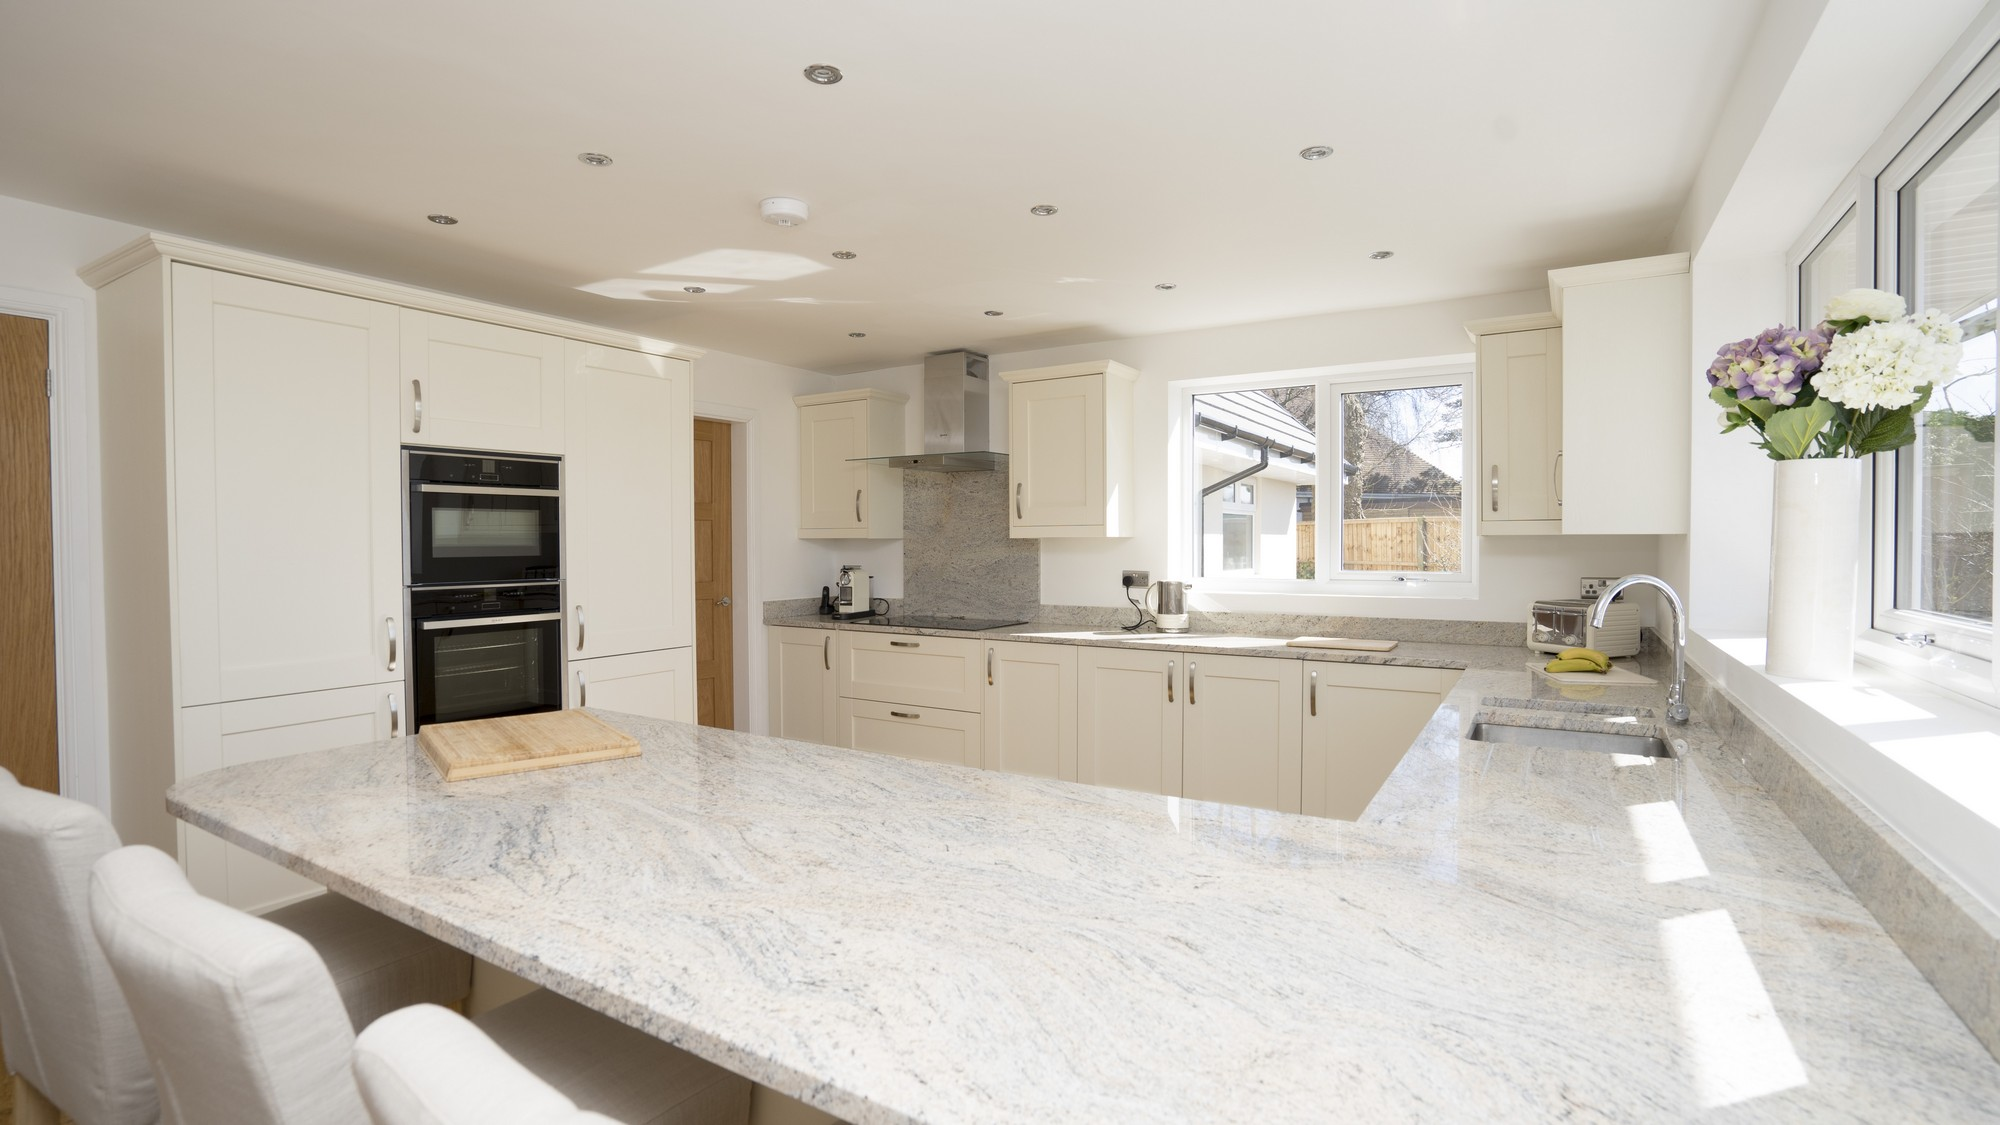 Large Ivory shaker kitchen with stainless steel handles and granite worktops. The granite has been cantilevered over the kitchen cupboards to create an island style dining area.